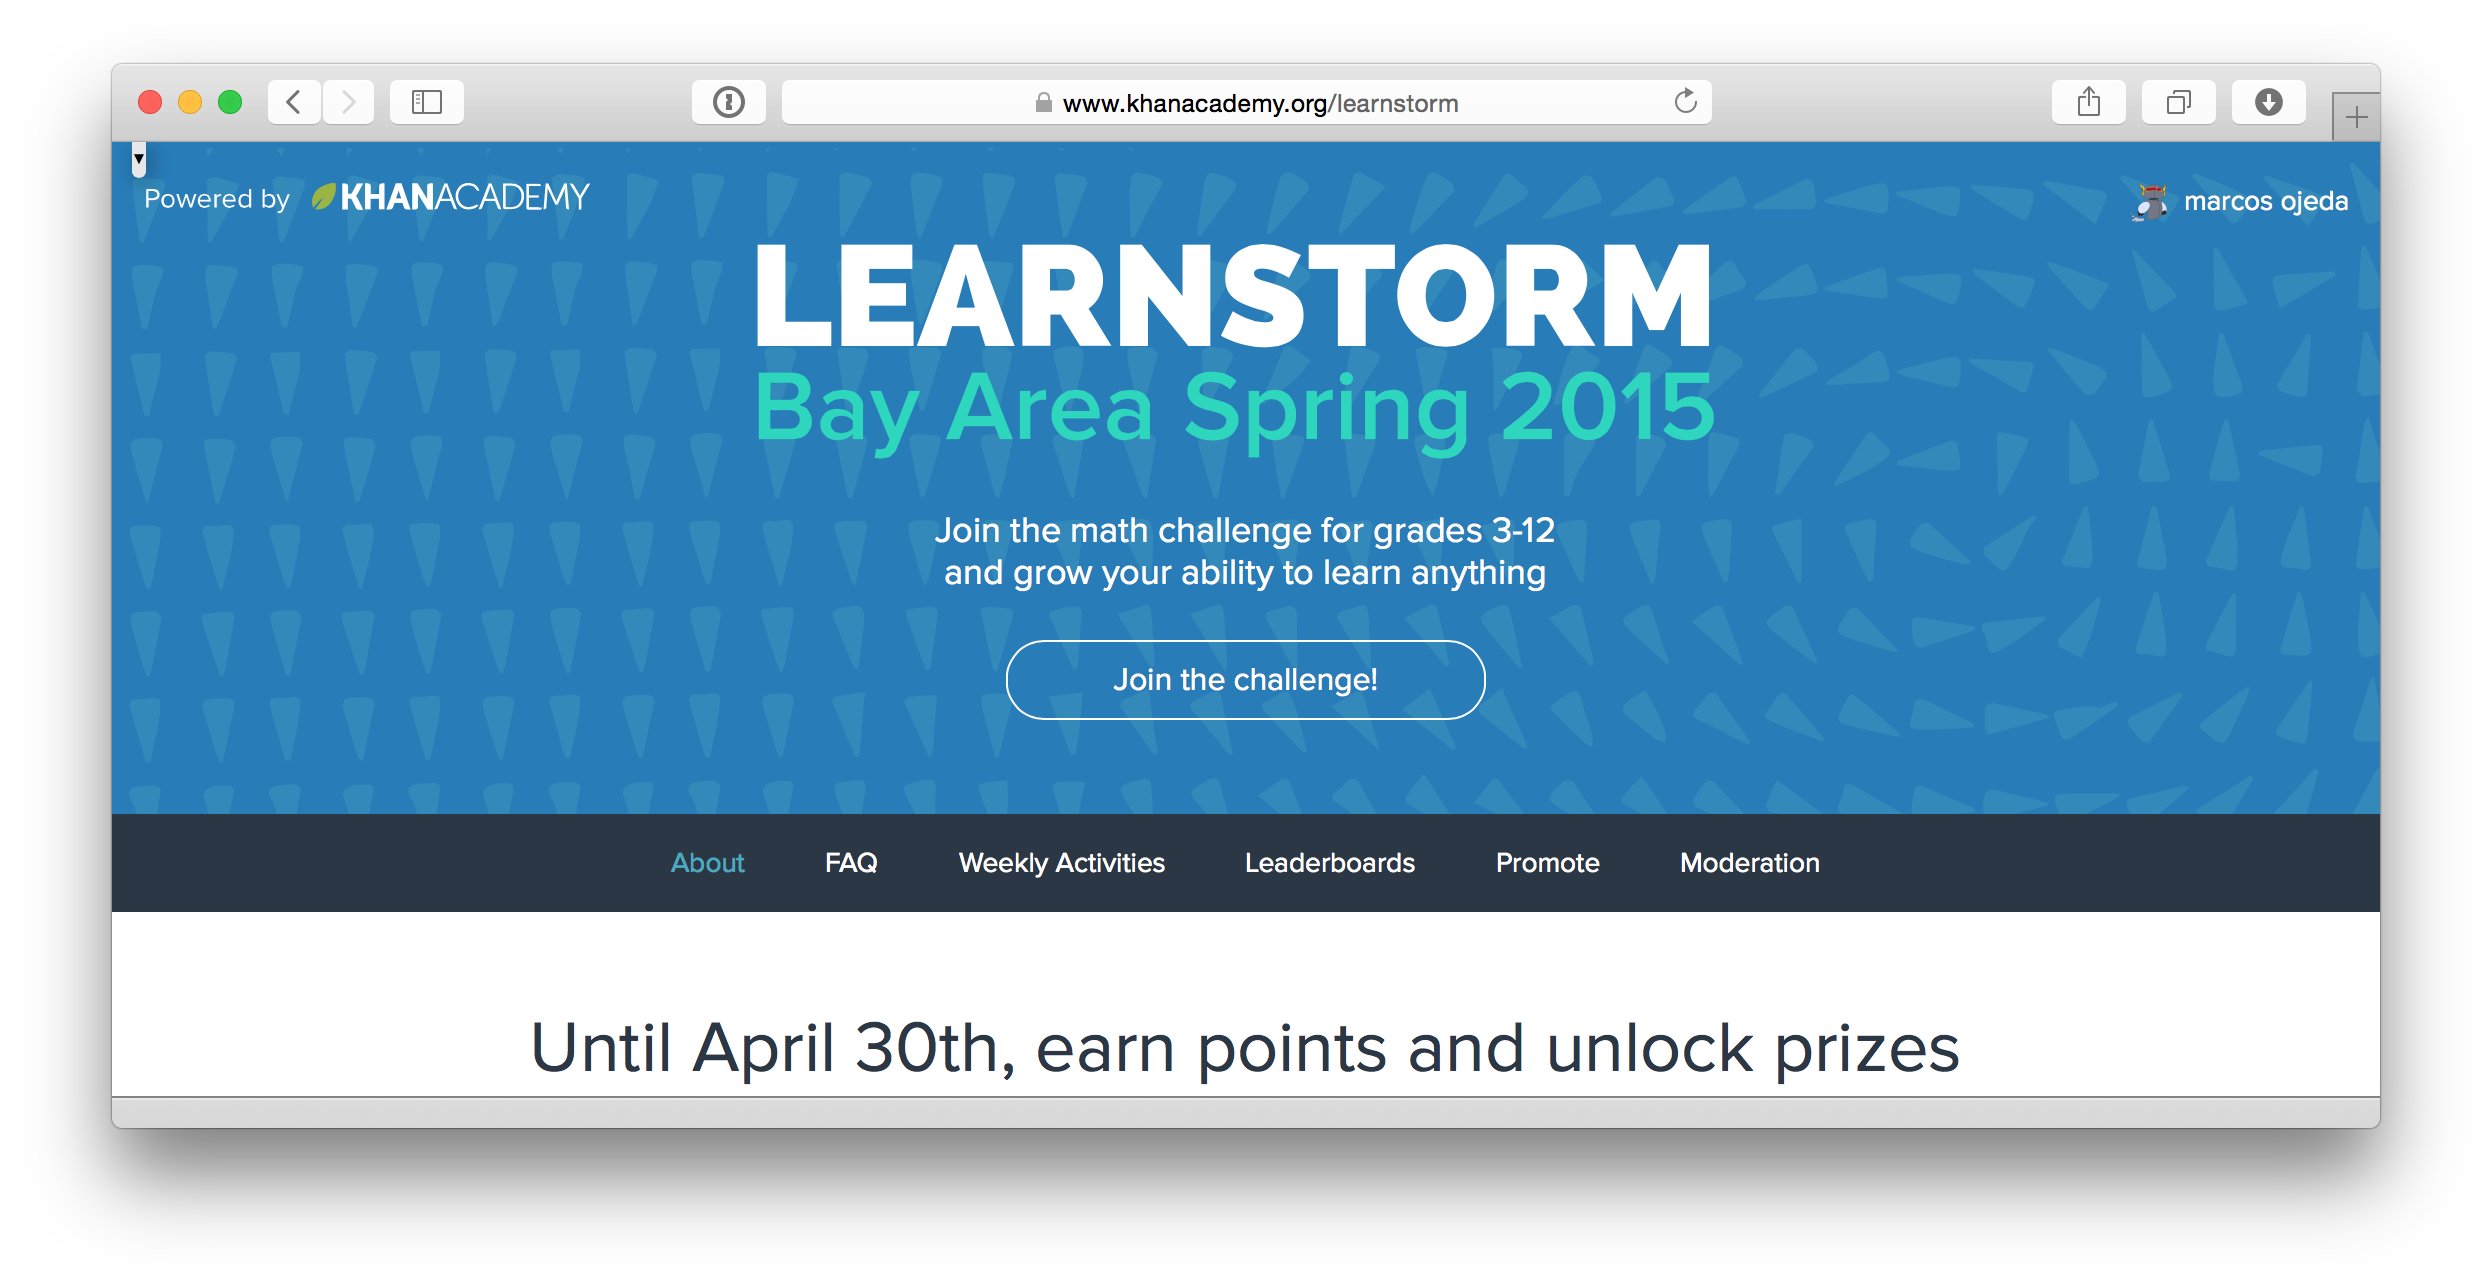 the learnstorm page